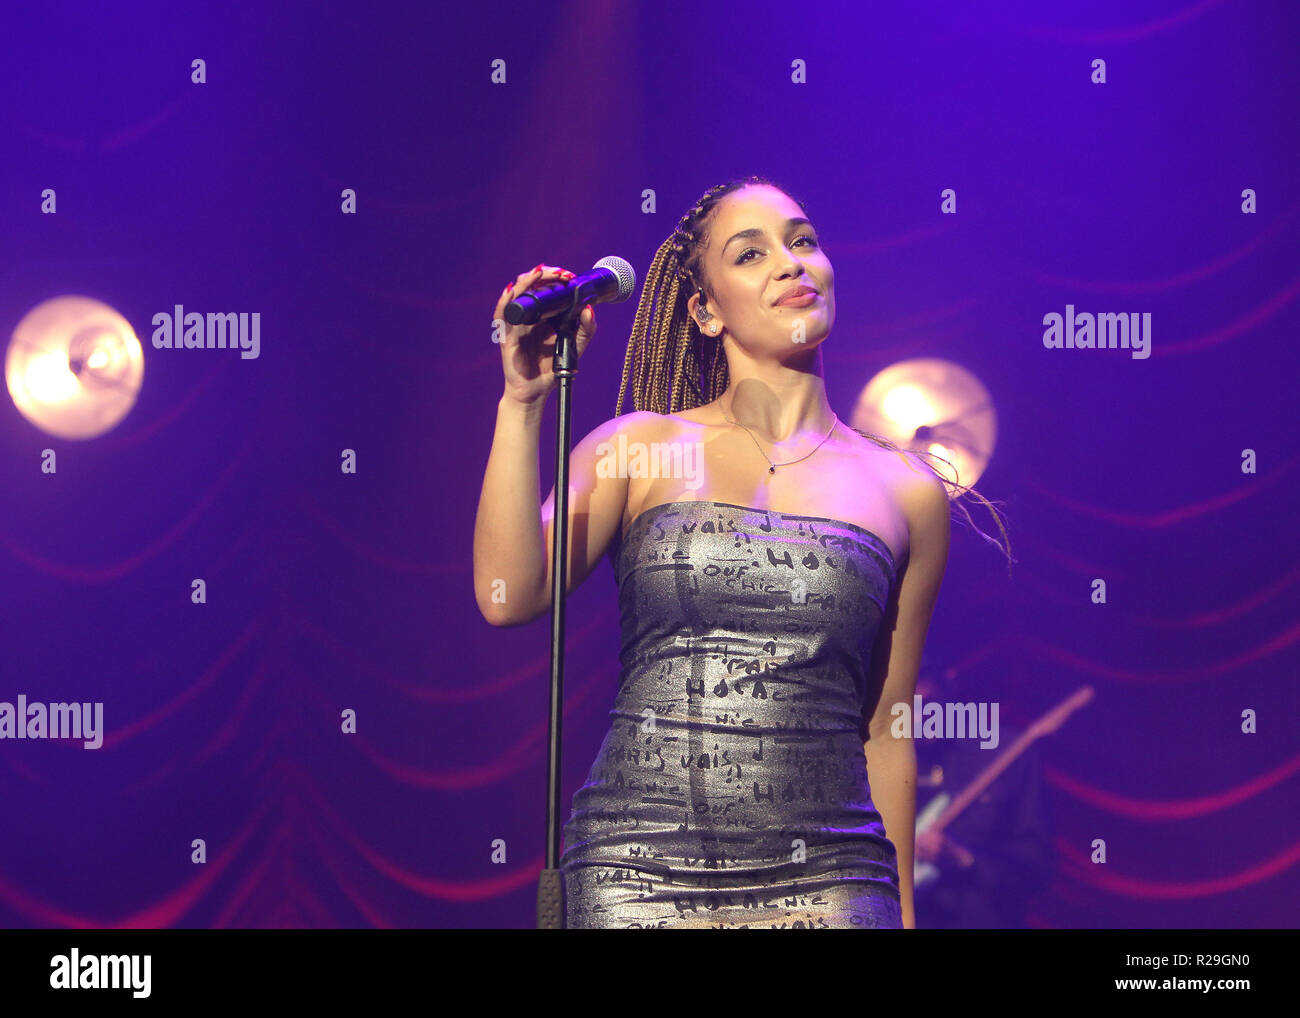 British singer/songwriter Jorja Smith performing on the first of two sold out night's at O2 Academy Brixton on Wednesday 17th October 2018 (Photos by Ian Bines/WENN)  Featuring: Jorja Smith Where: London, United Kingdom When: 17 Oct 2018 Credit: WENN.com Stock Photo